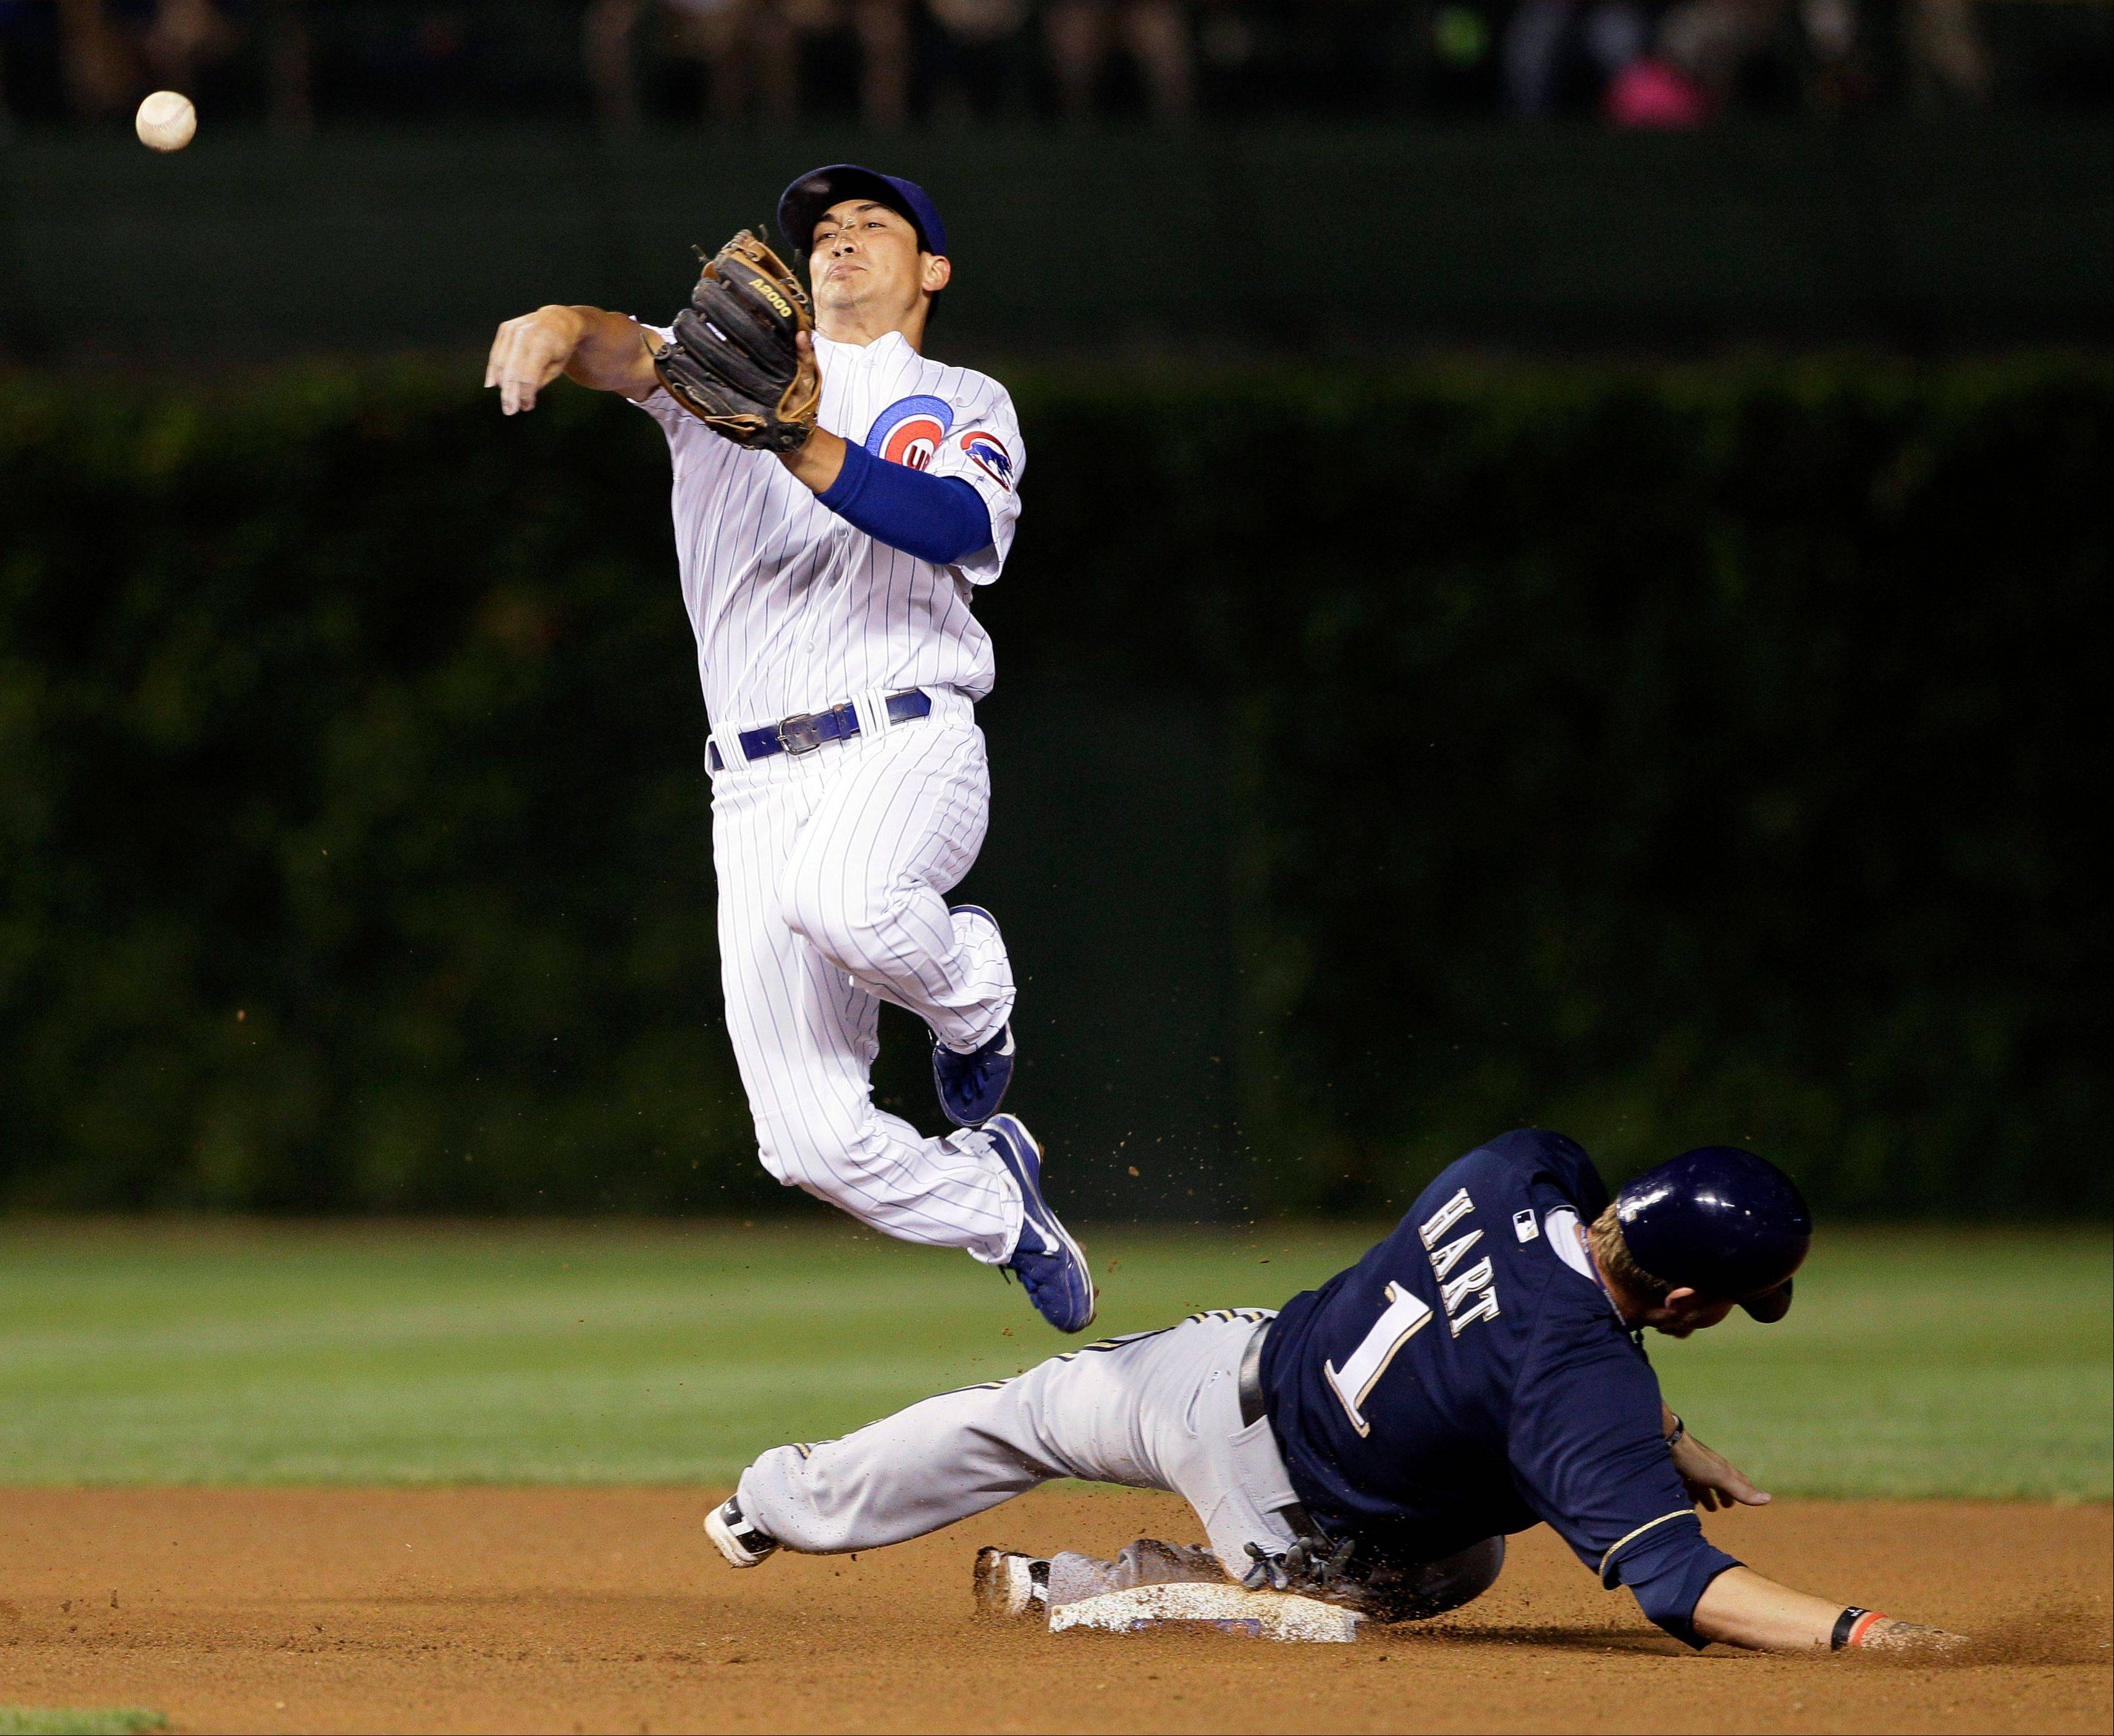 Darwin Barney set a National League single-season record for consecutive errorless games at second base Wednesday, as he reached 114, breaking the mark he held with David Eckstein, who had 113 in 2010 with the San Diego Padres. Although, he did have had an error for several minutes in the seventh, the scoring decision was reversed.